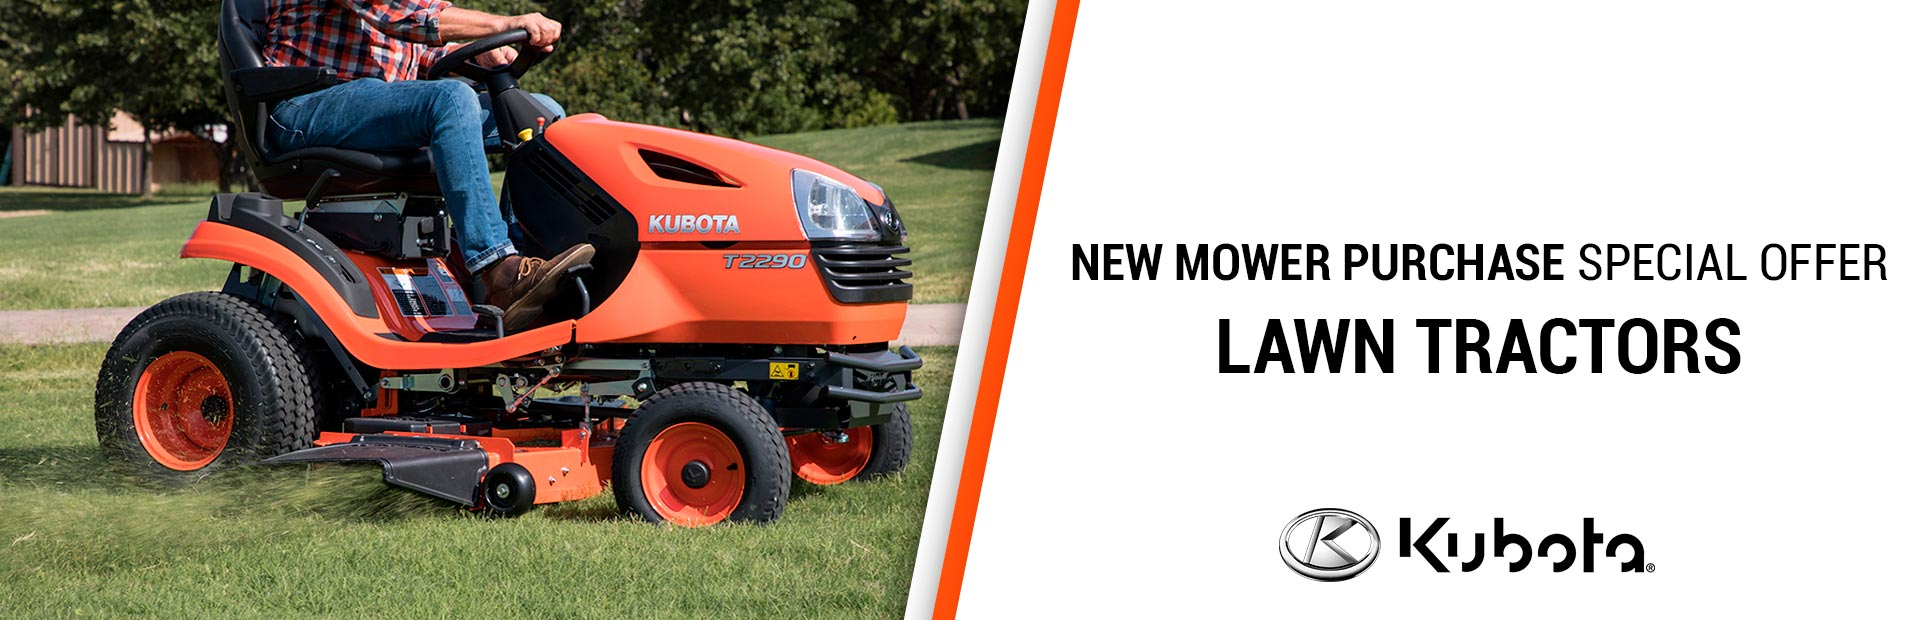 Kubota: NEW MOWER PURCHASE SPECIAL OFFER-LAWN TRACTORS